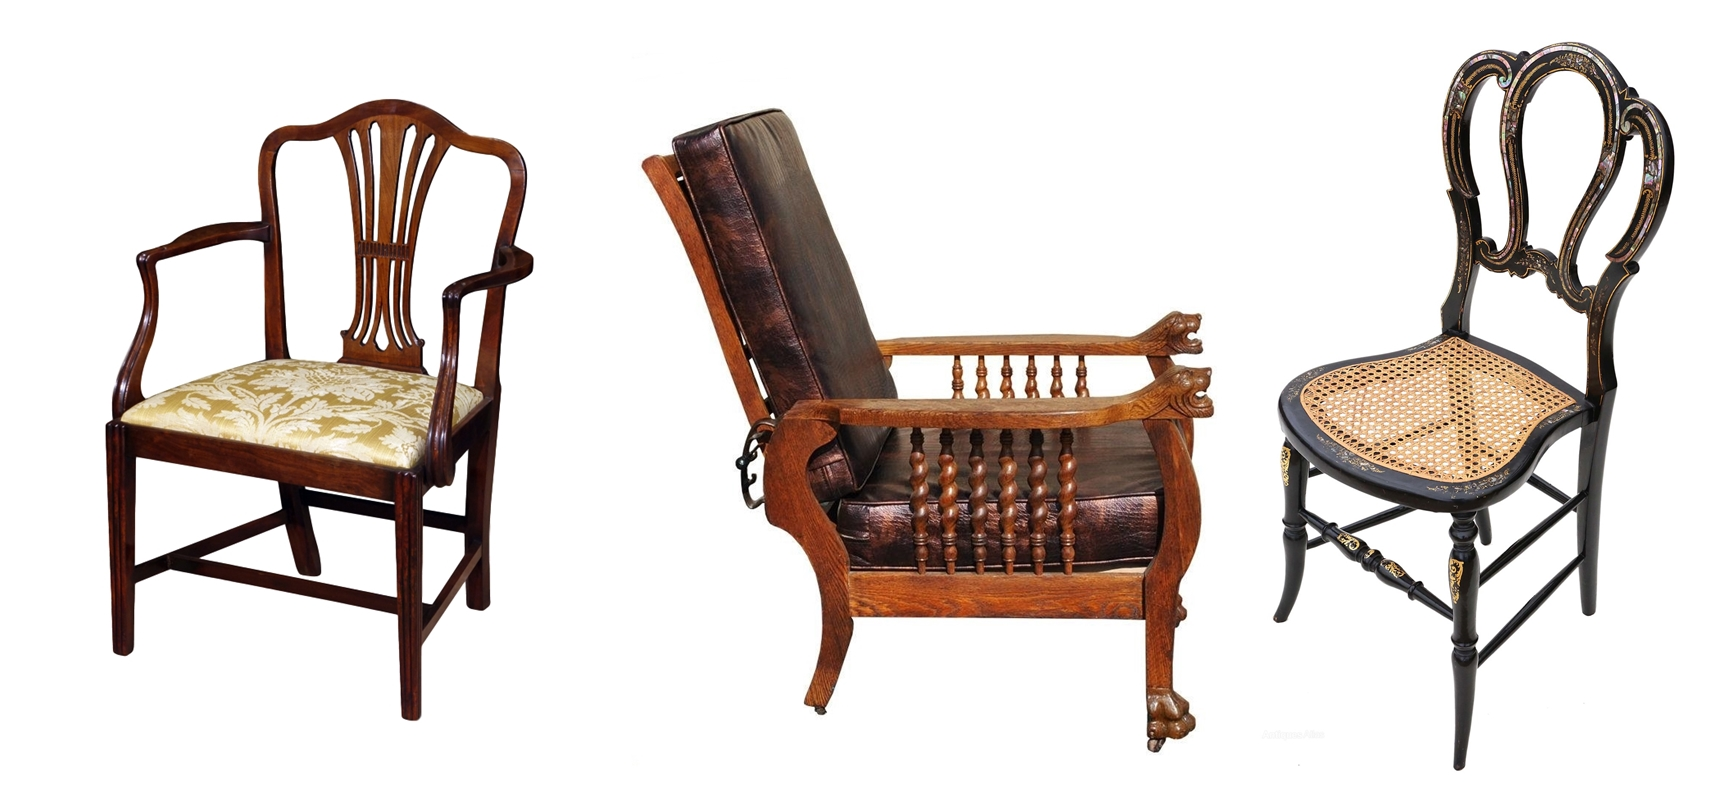 Chair Restoration Products Supplies